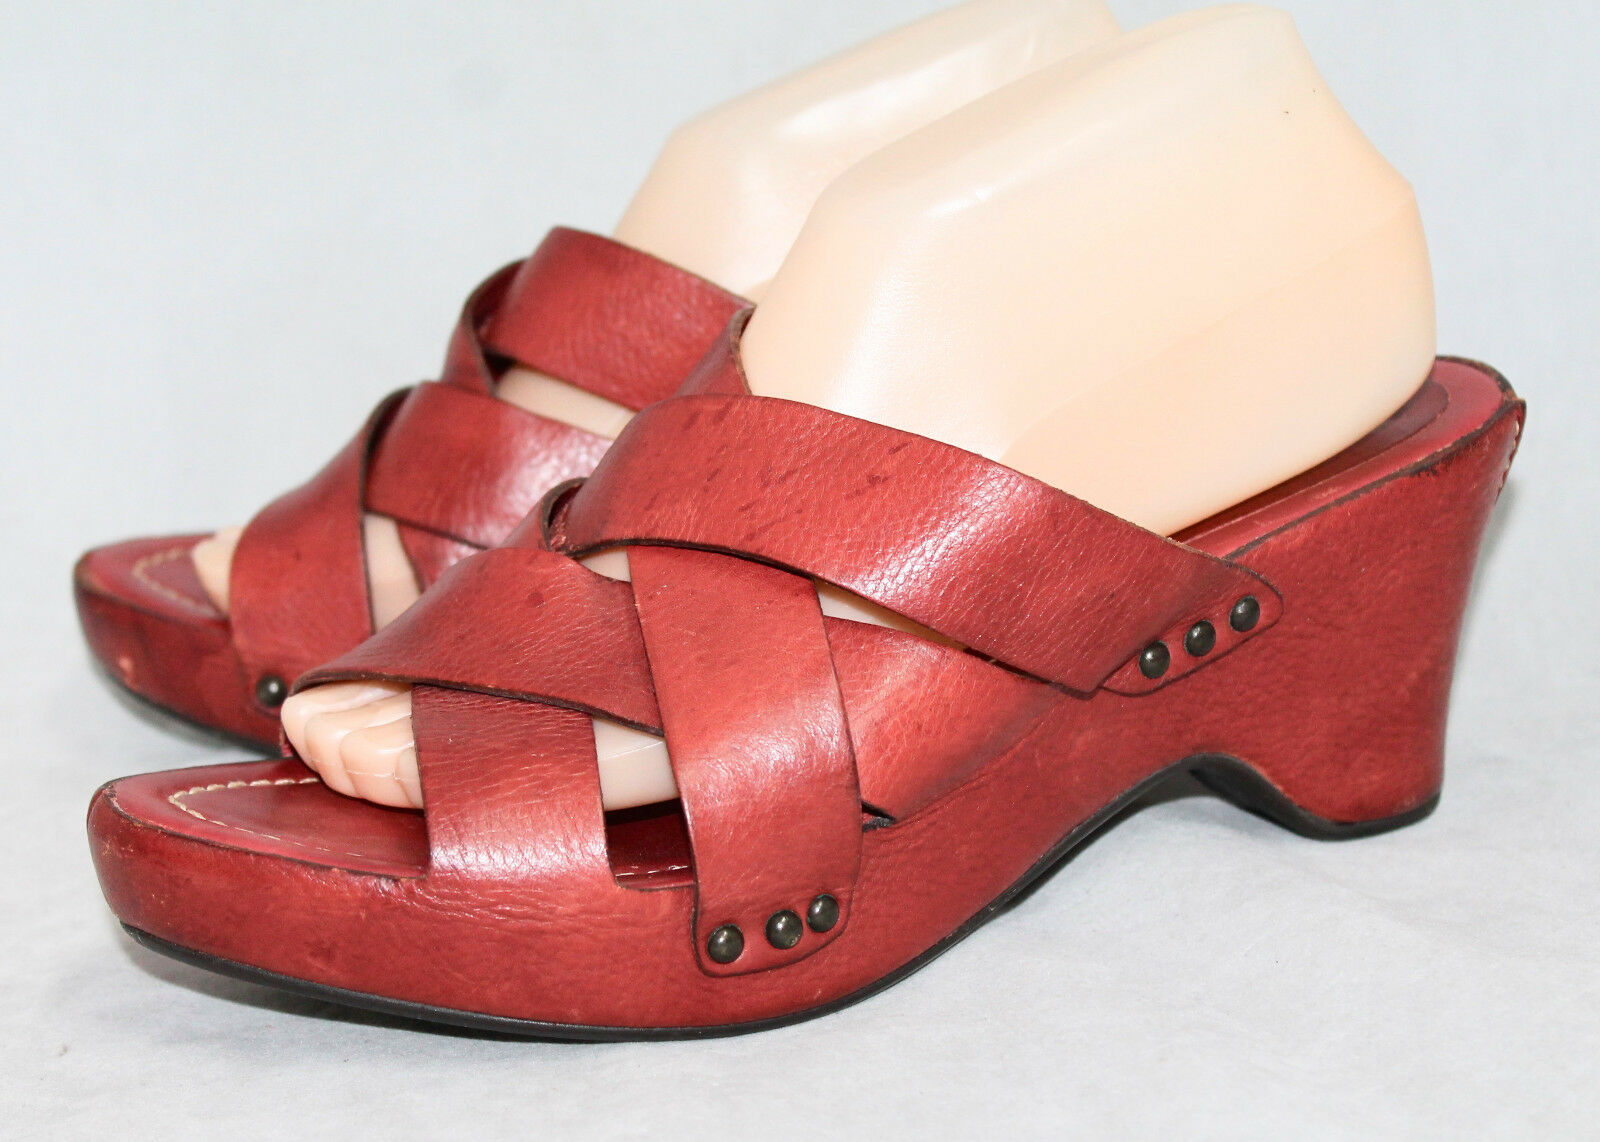 FRYE 73715 Thomasville Wo's 10B Red Woven Strappy Leather Mules Slides